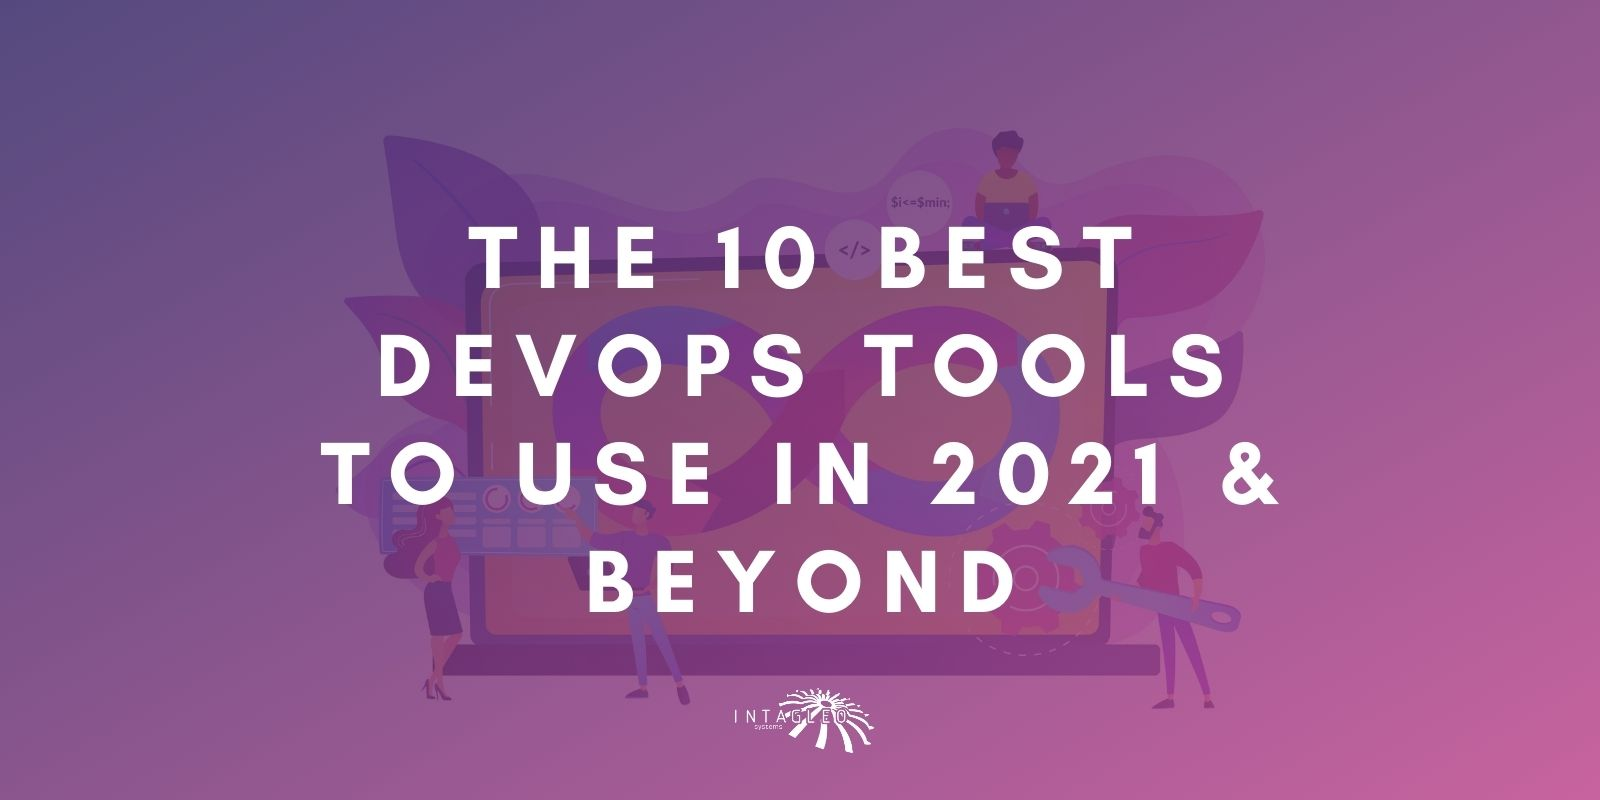 Best DevOps Tools 2021